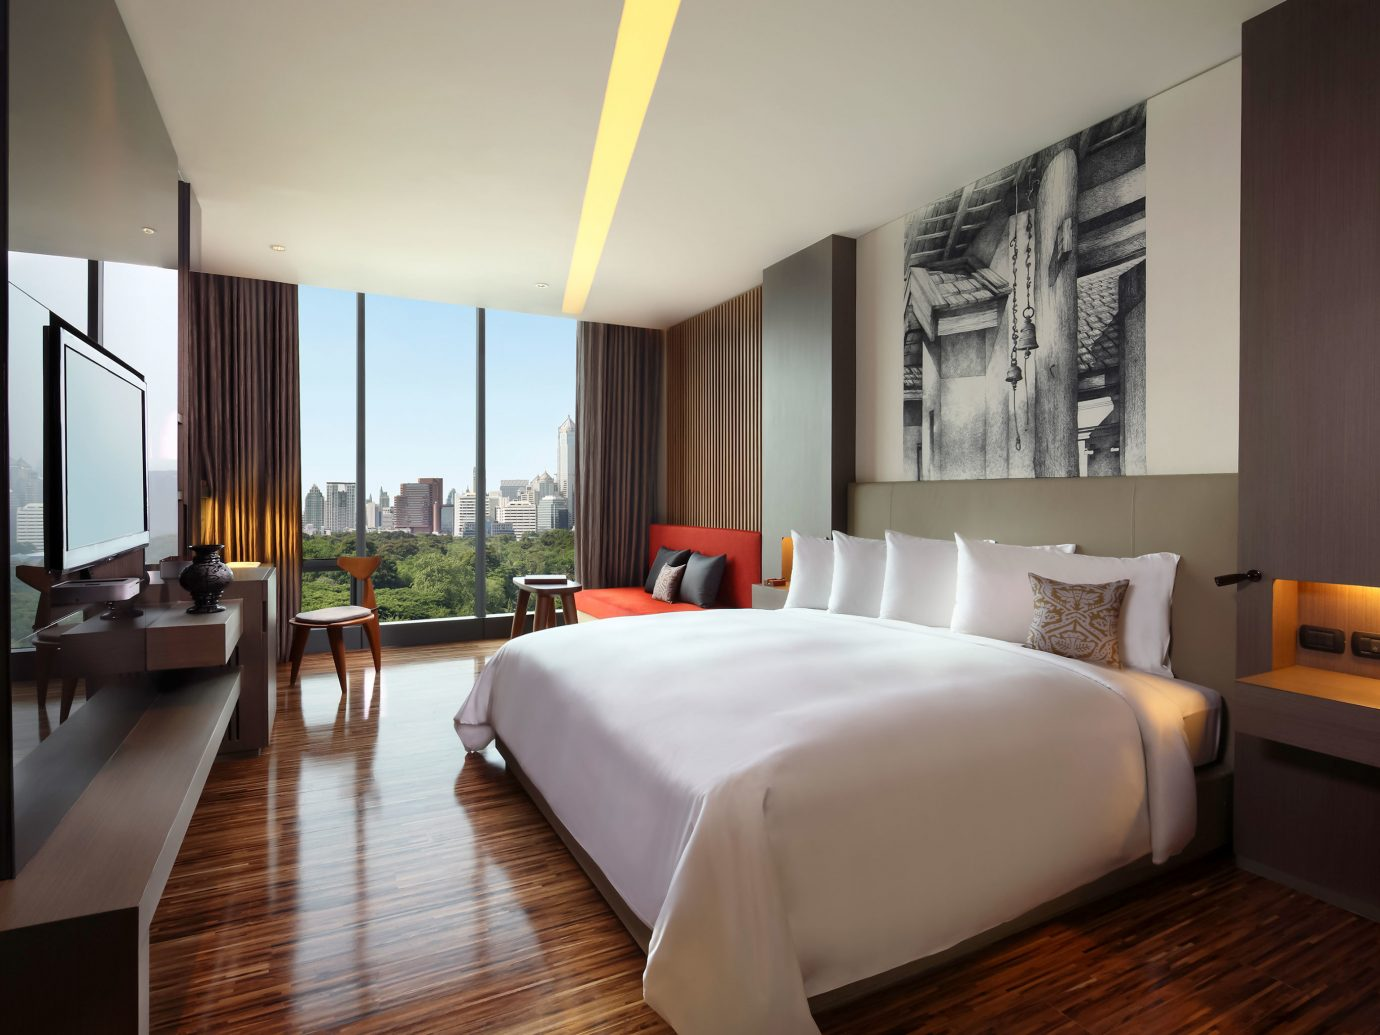 Architecture Bedroom City Design Hip Hotels Luxury Scenic views floor indoor room wall bed hotel property ceiling window Suite condominium real estate estate interior design nice apartment Villa furniture wood